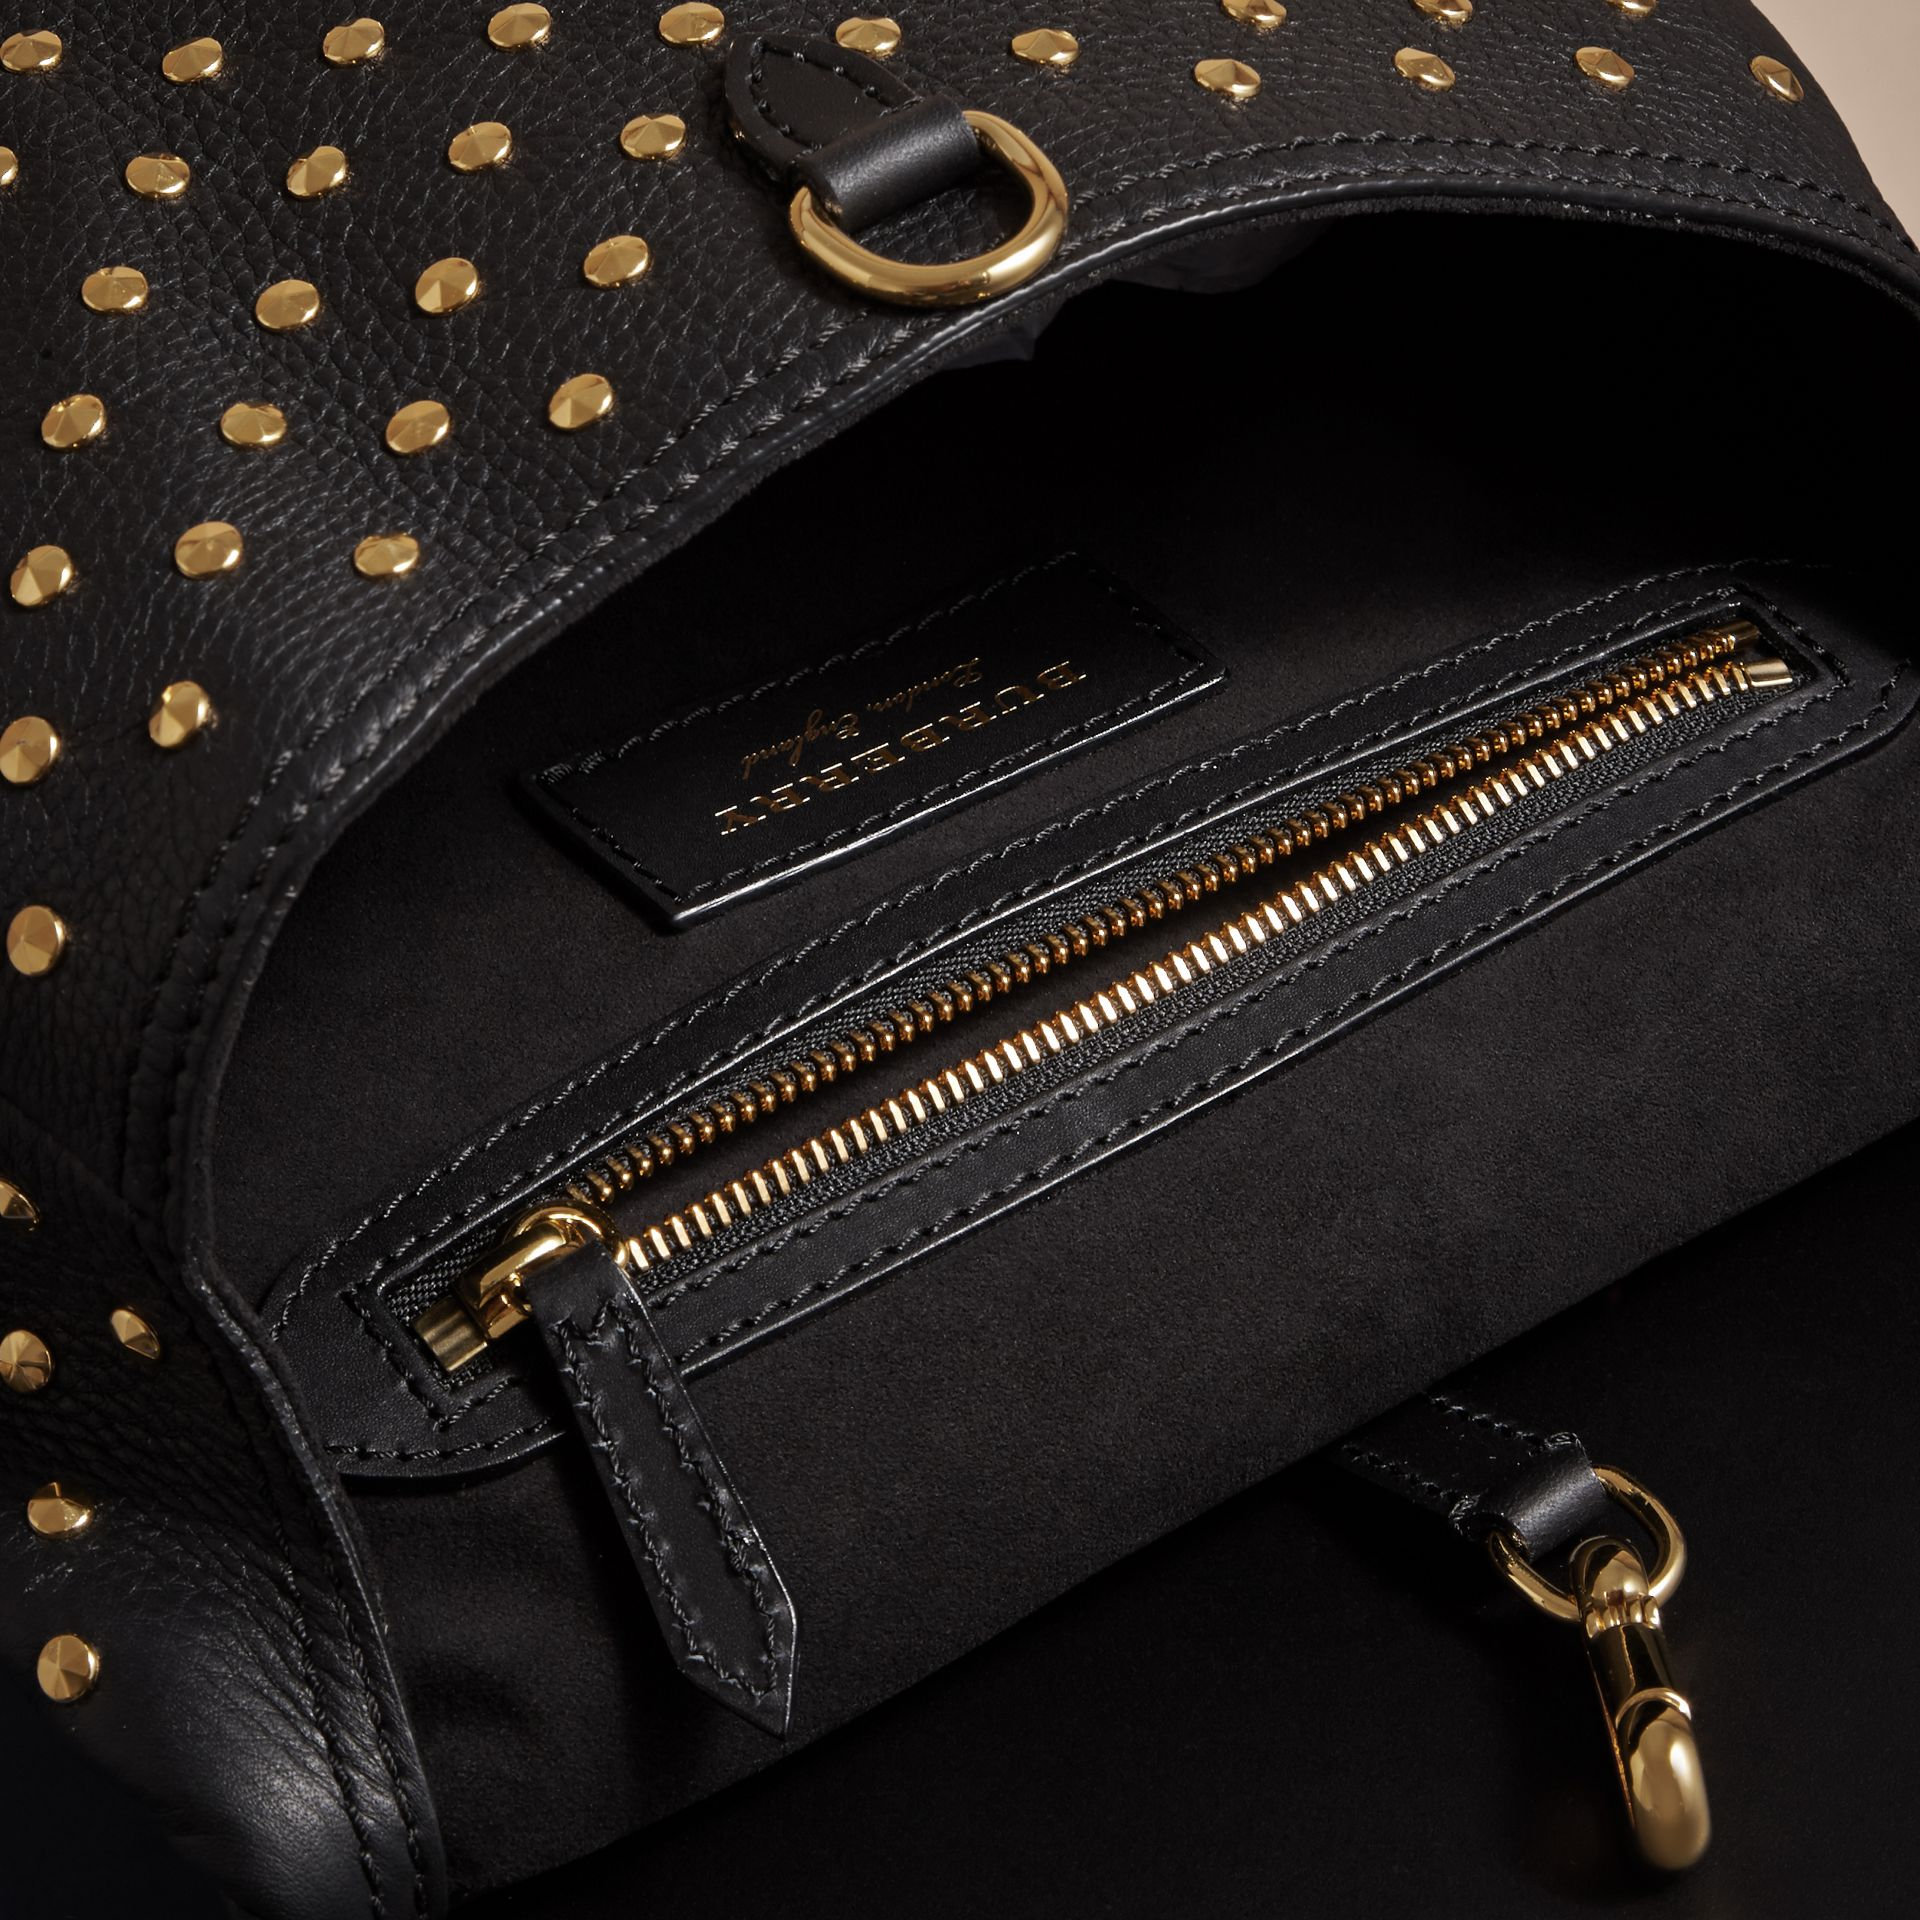 Noir Petit sac The Bridle en cuir à rivets - photo de la galerie 5